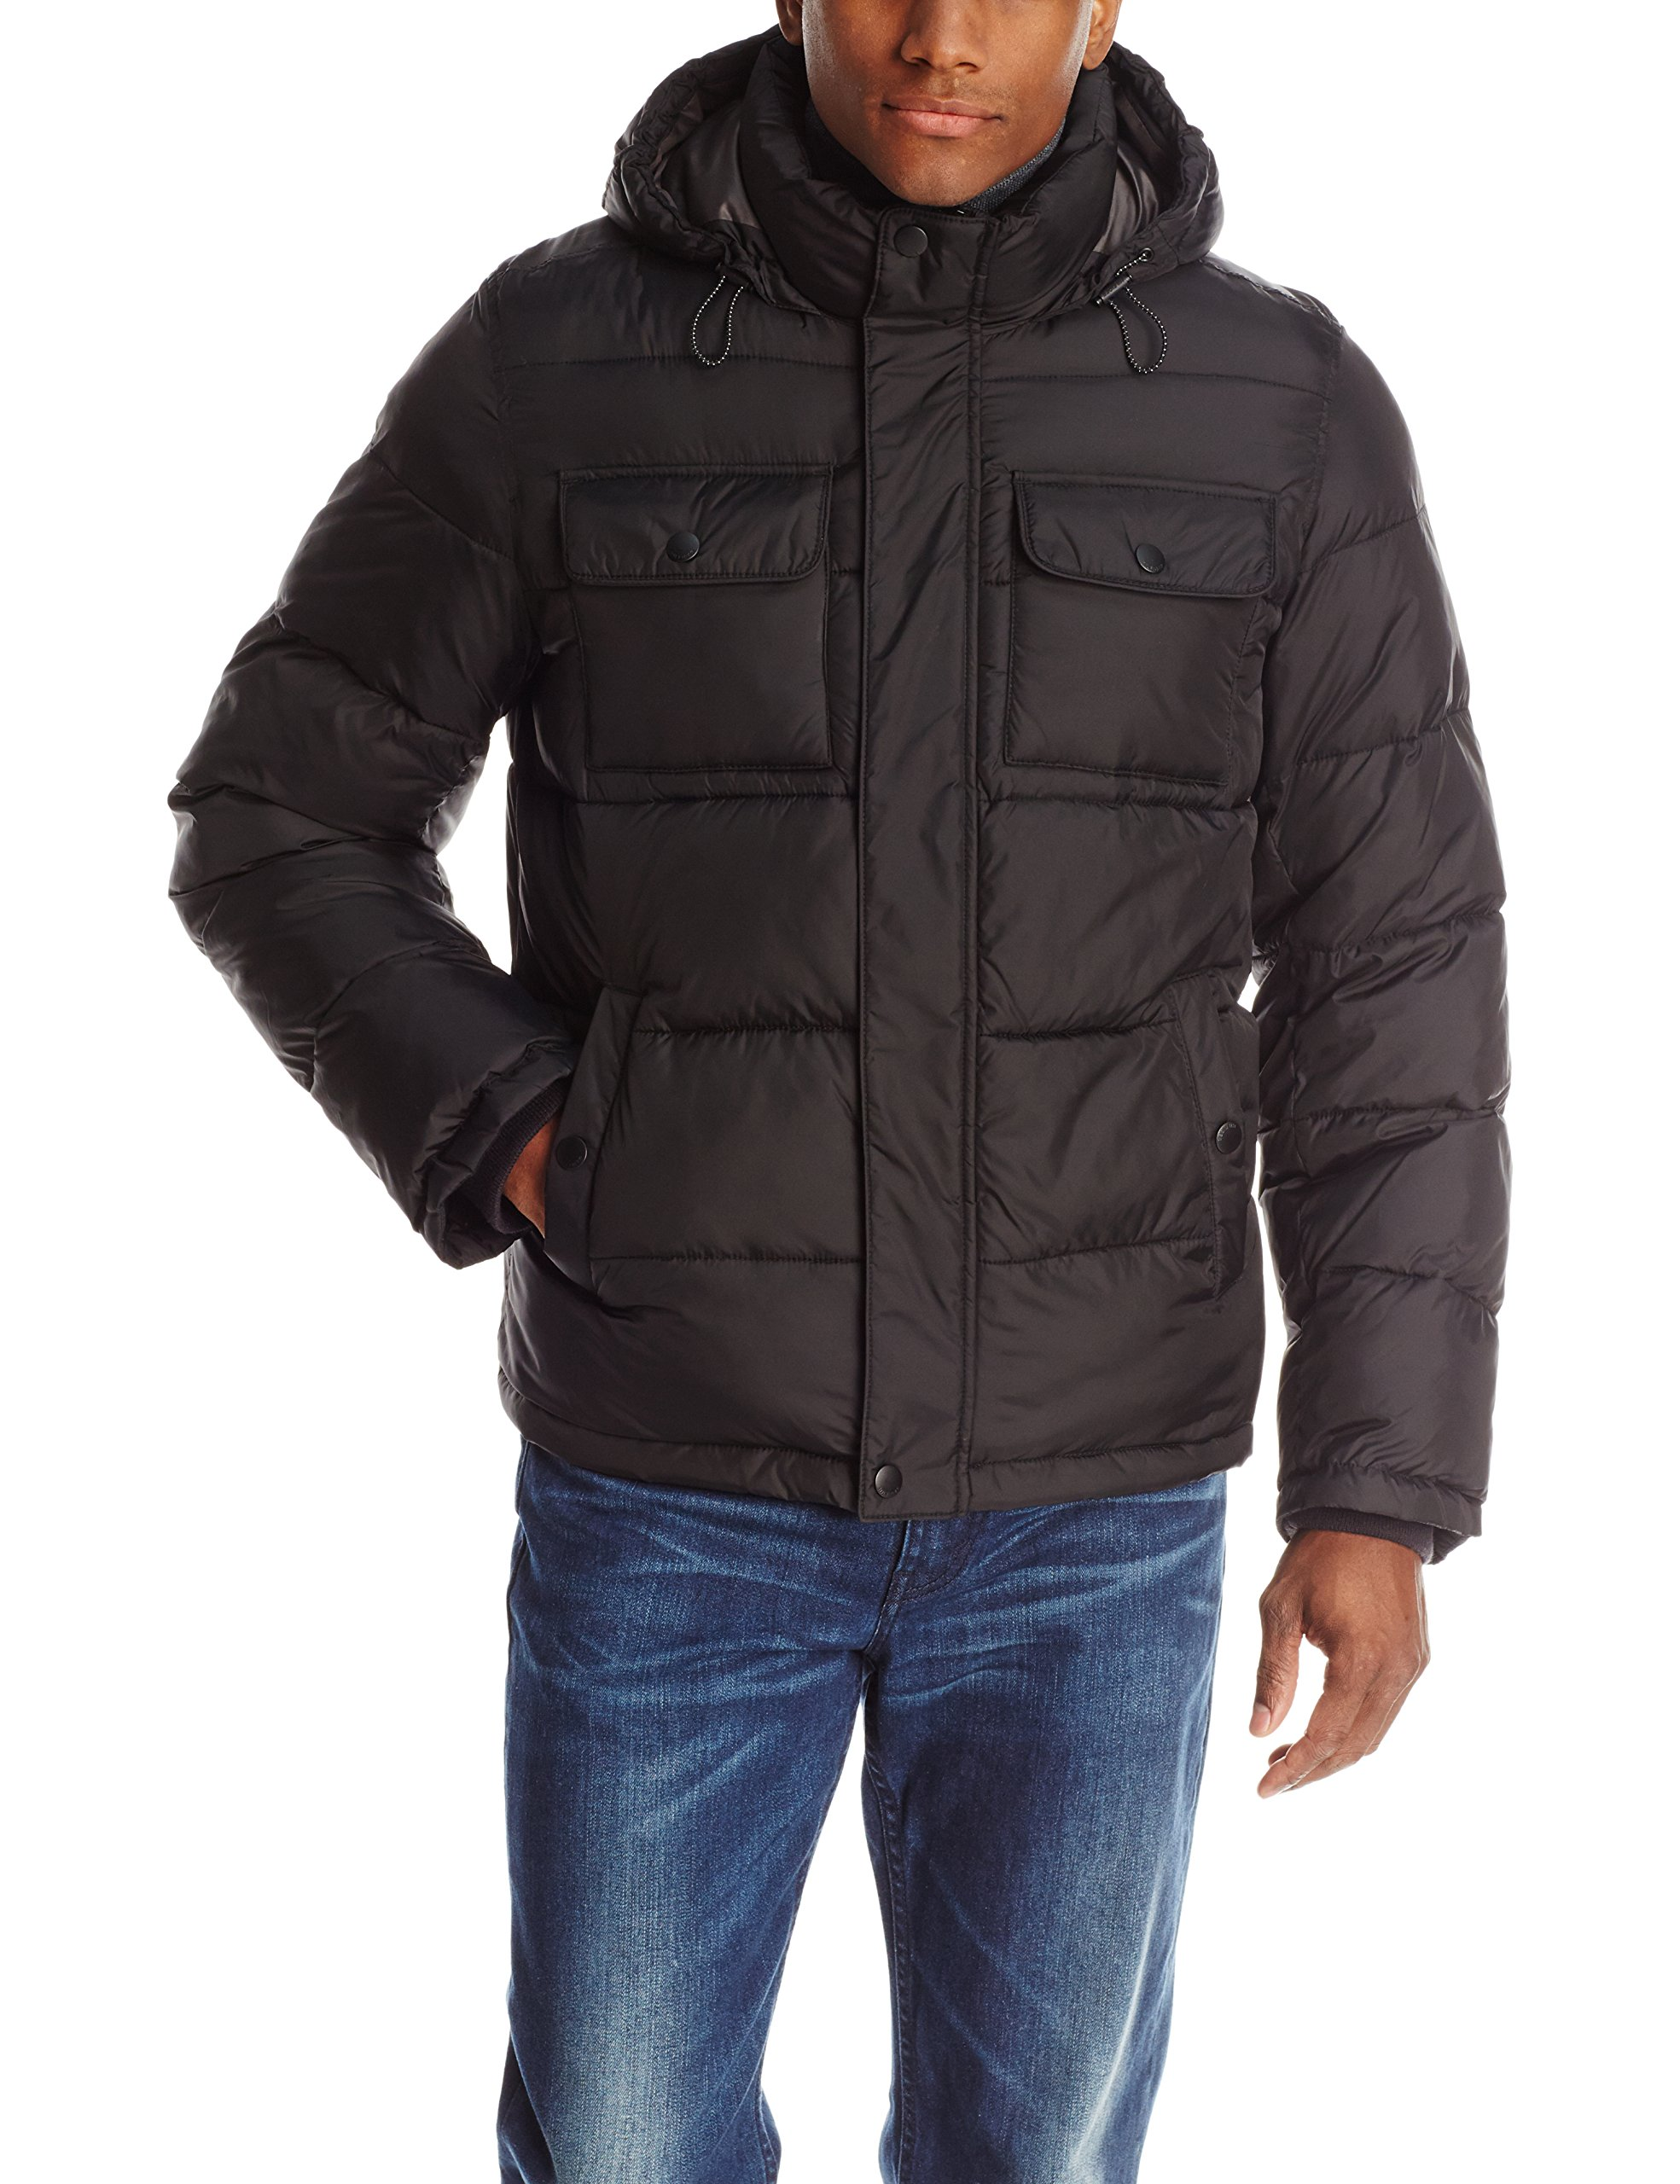 Tommy Hilfiger Men's Nylon Two Pocket Hoody Puffer, Black, Small